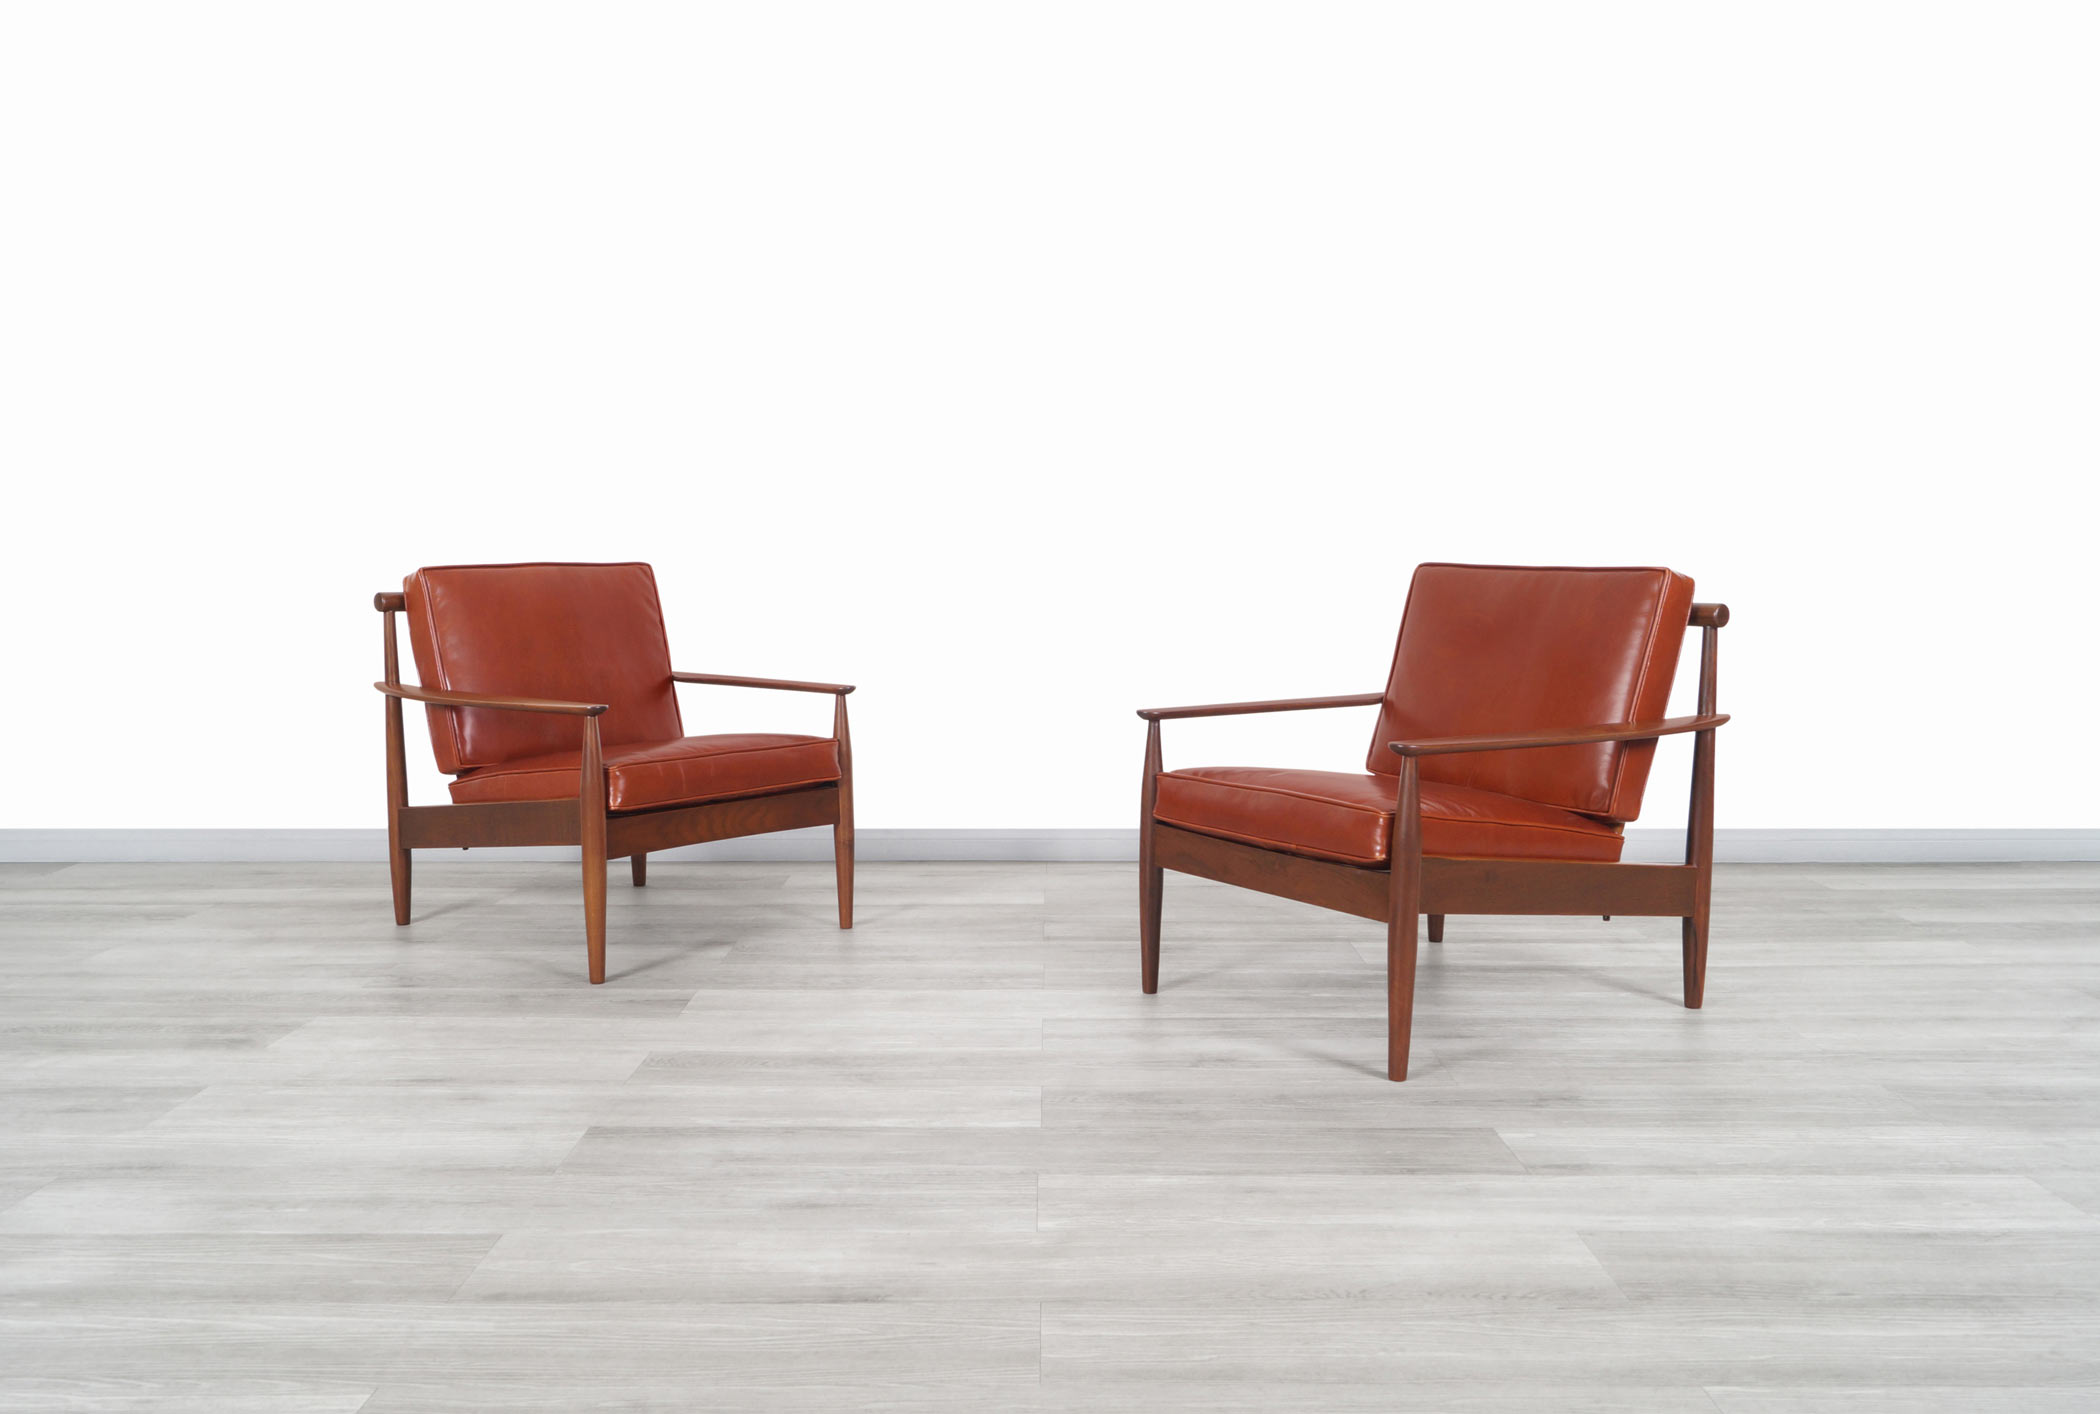 Danish Modern Leather and Walnut Lounge Chairs by Hans C. Andersen